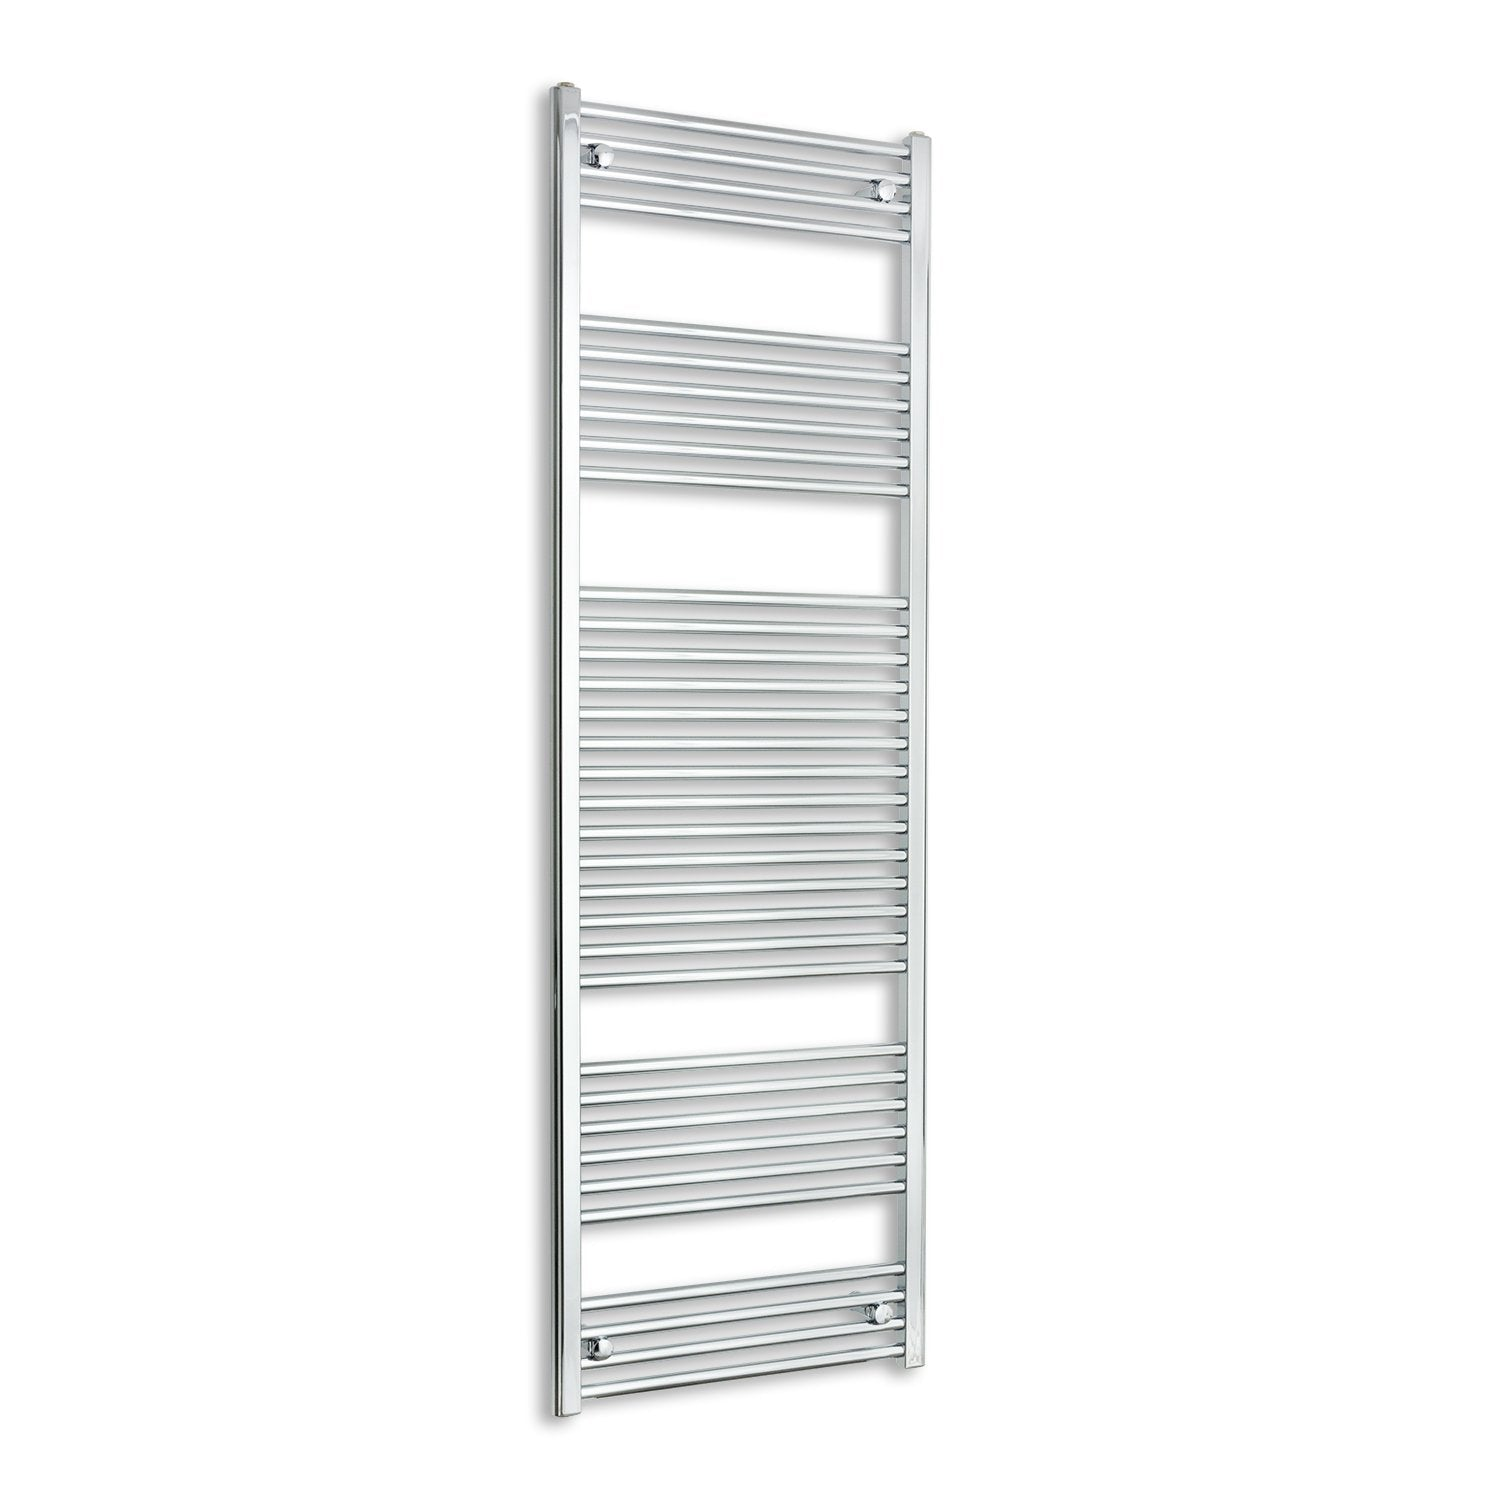 600mm Wide 1800mm High Straight Chrome Heated Towel Rail Radiator HTR,Towel Rail Only